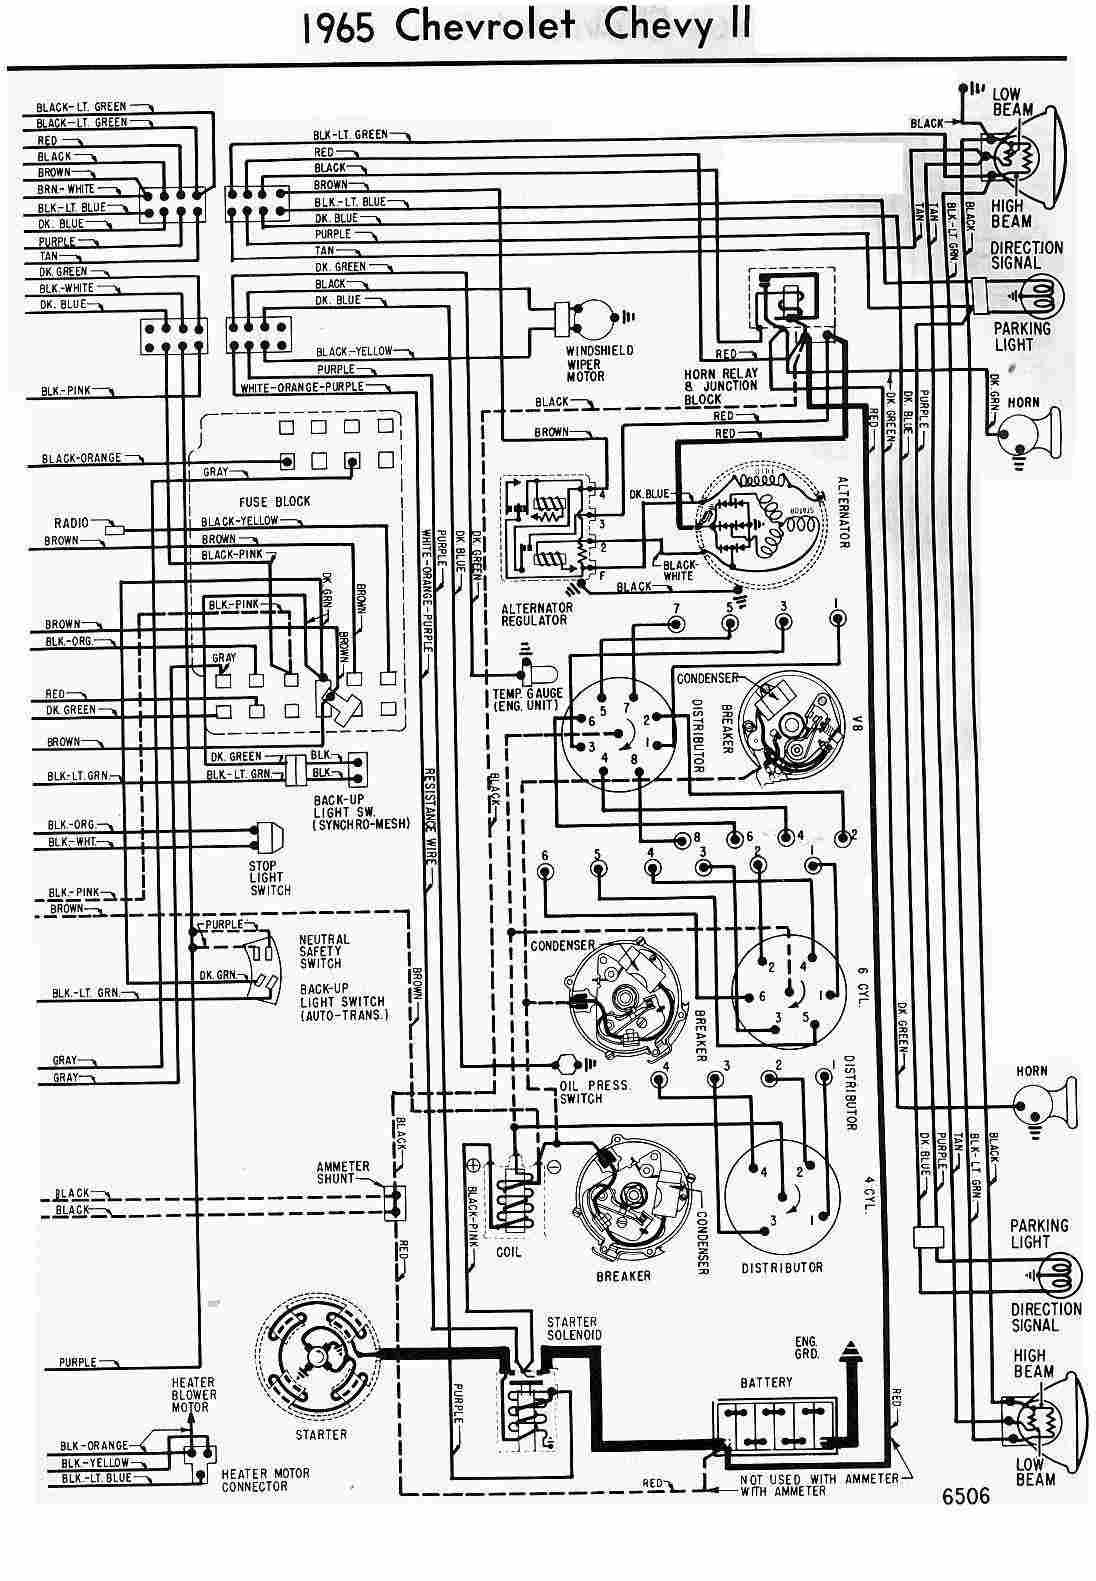 1977 Chevy Wiring Harness Diagram Libraries 76 Engine 1976 Corvette Dash Schematic Simple Diagramswiring 1964 Diagrams